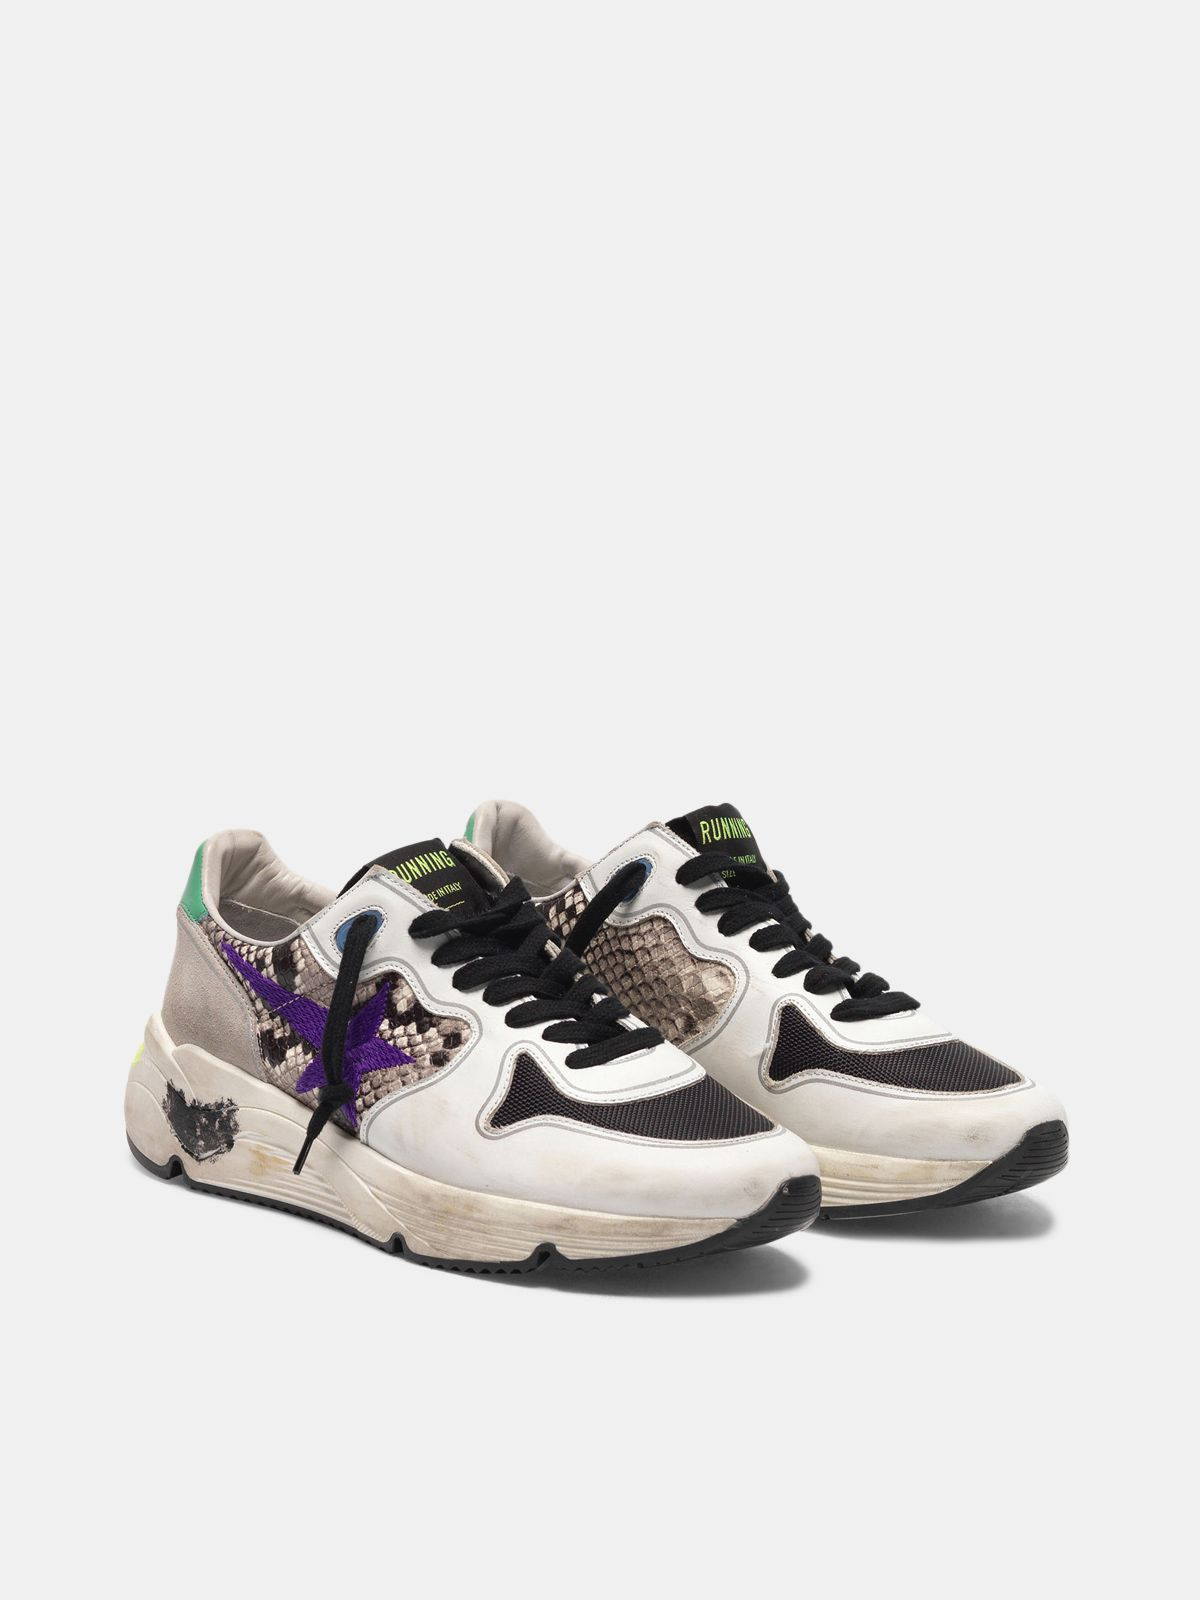 Golden Goose - Sneakers Running Sole in pelle stampa serpente con stella viola ricamata in